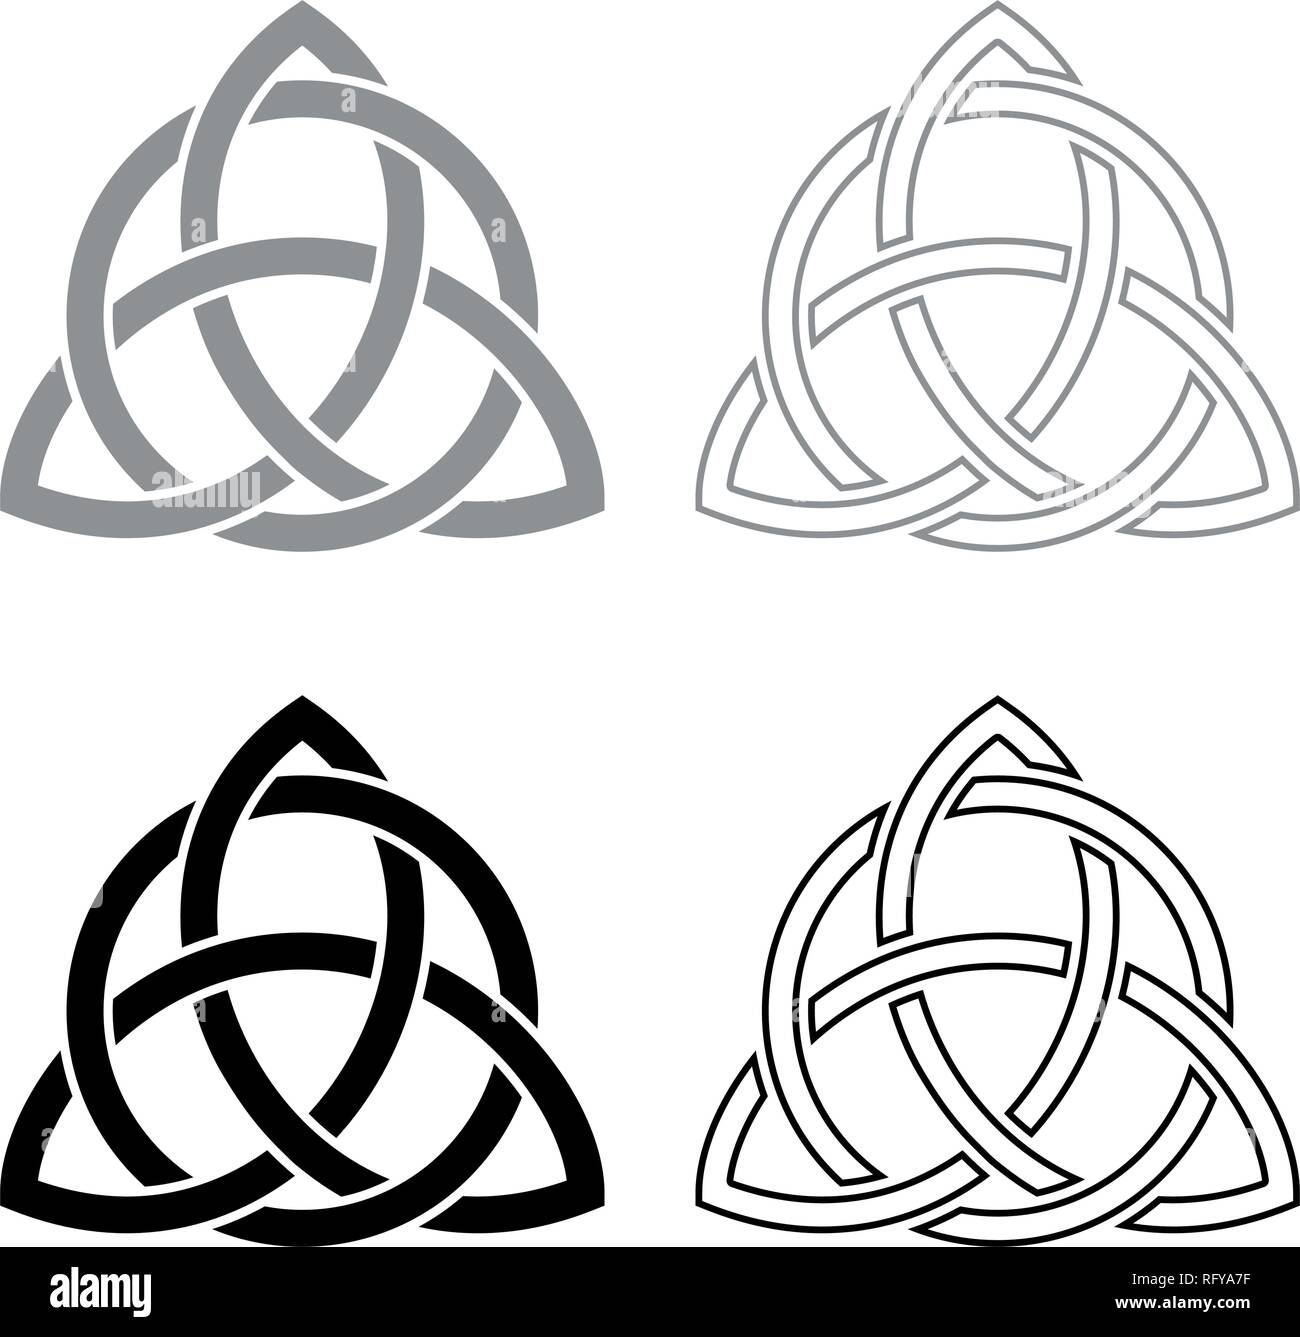 Triquetra in circle Trikvetr knot shape Trinity knot icon set grey black color vector I outline flat style simple image - Stock Vector